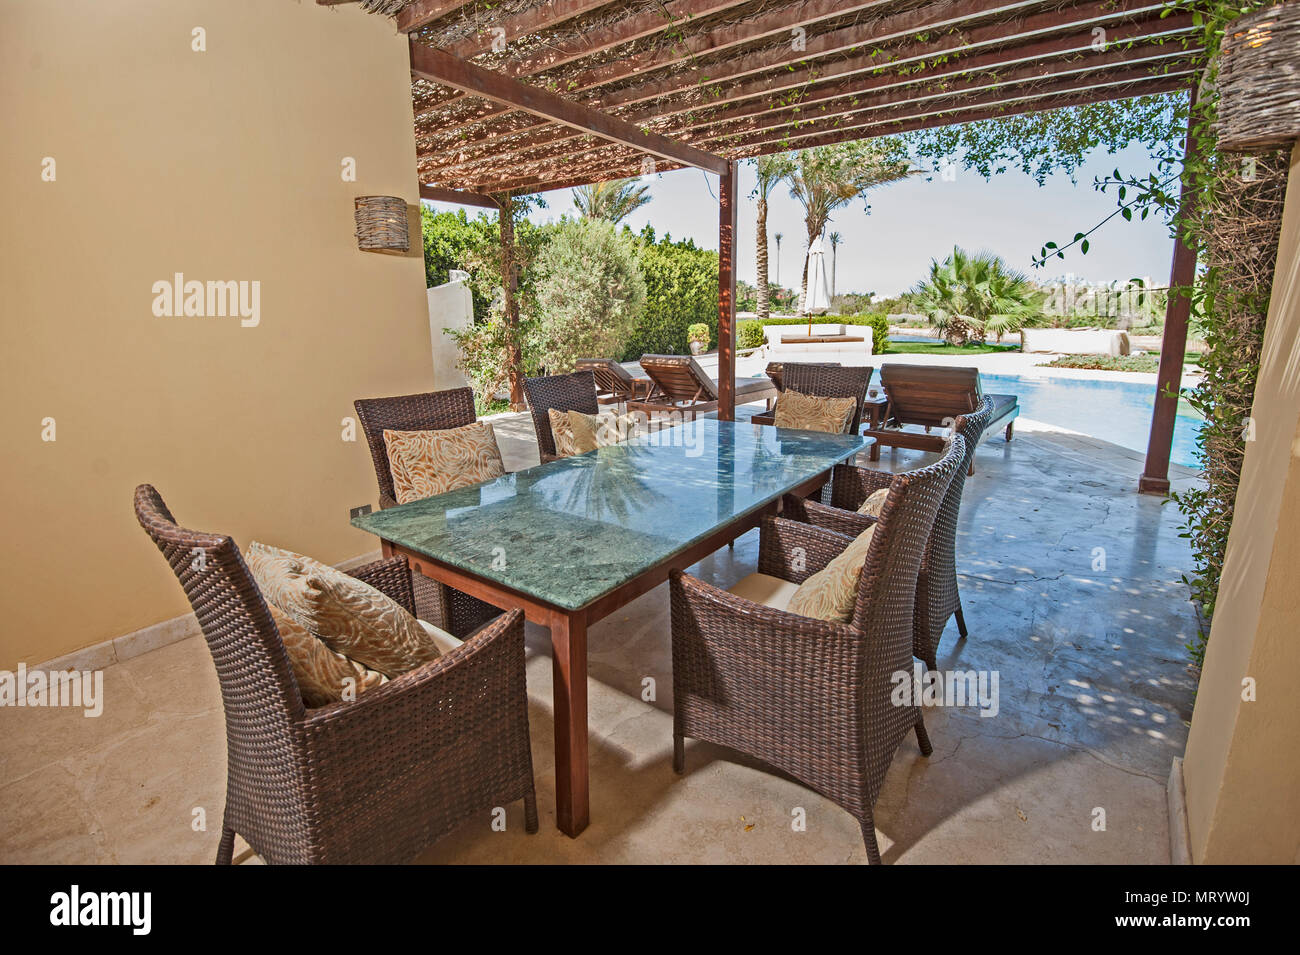 Luxury villa show home in tropical summer holiday resort with swimming pool and outdoor dining table area Stock Photo